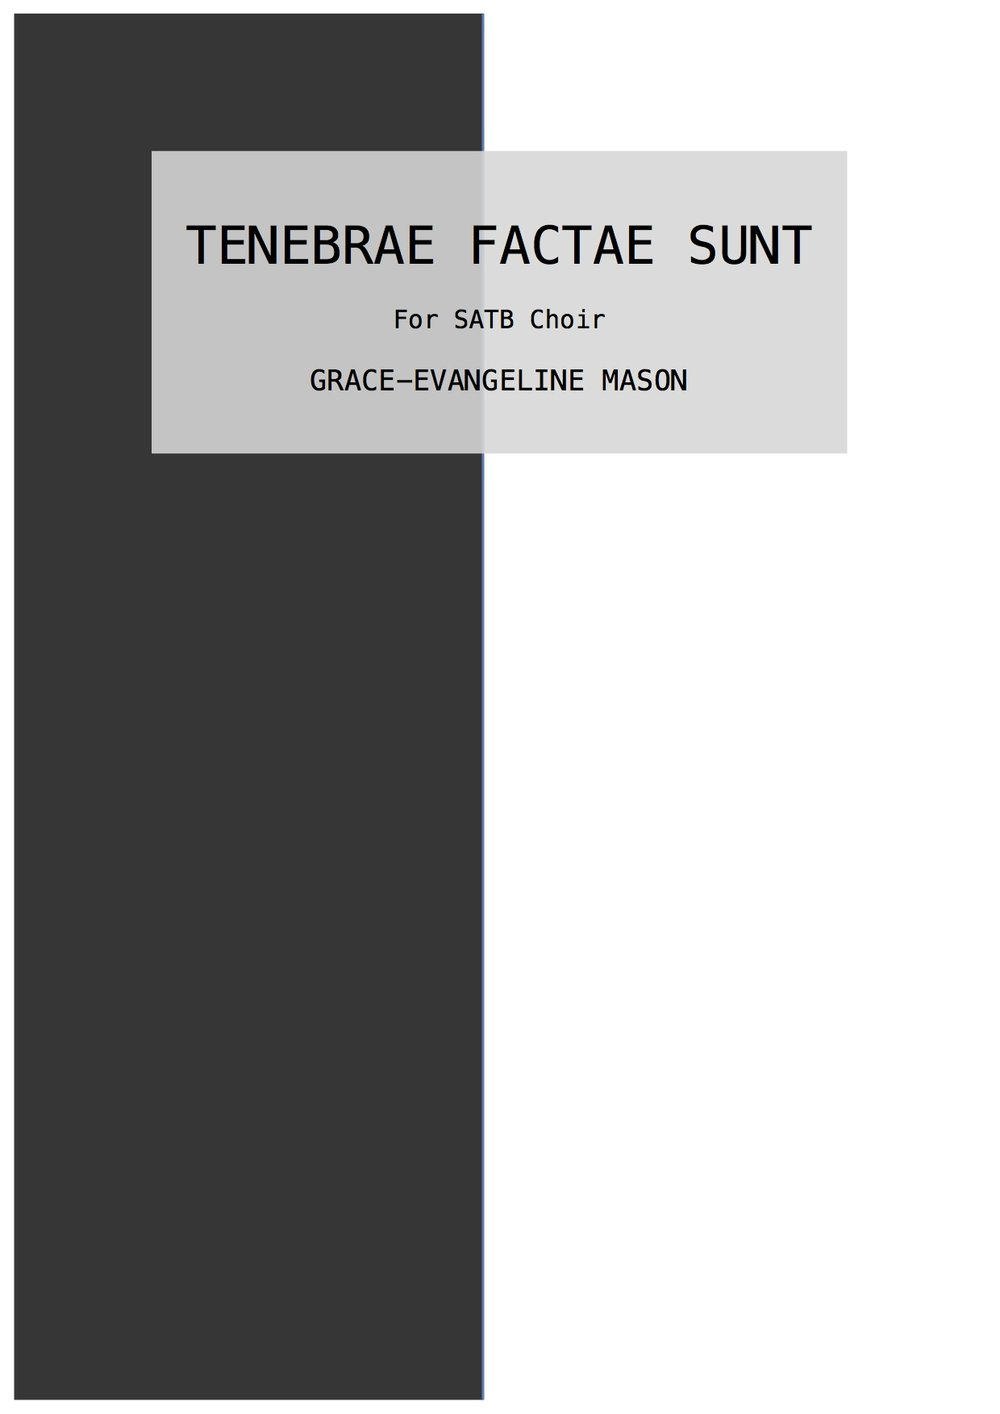 Tenebrae Factae Sunt (2018) - for SATB choirDuration: 4'A setting of the words from the Response for Matins of Good FridayFirst performed by Manchester Renaissance Ensemble (18/05/18). Recording available on Spotify.